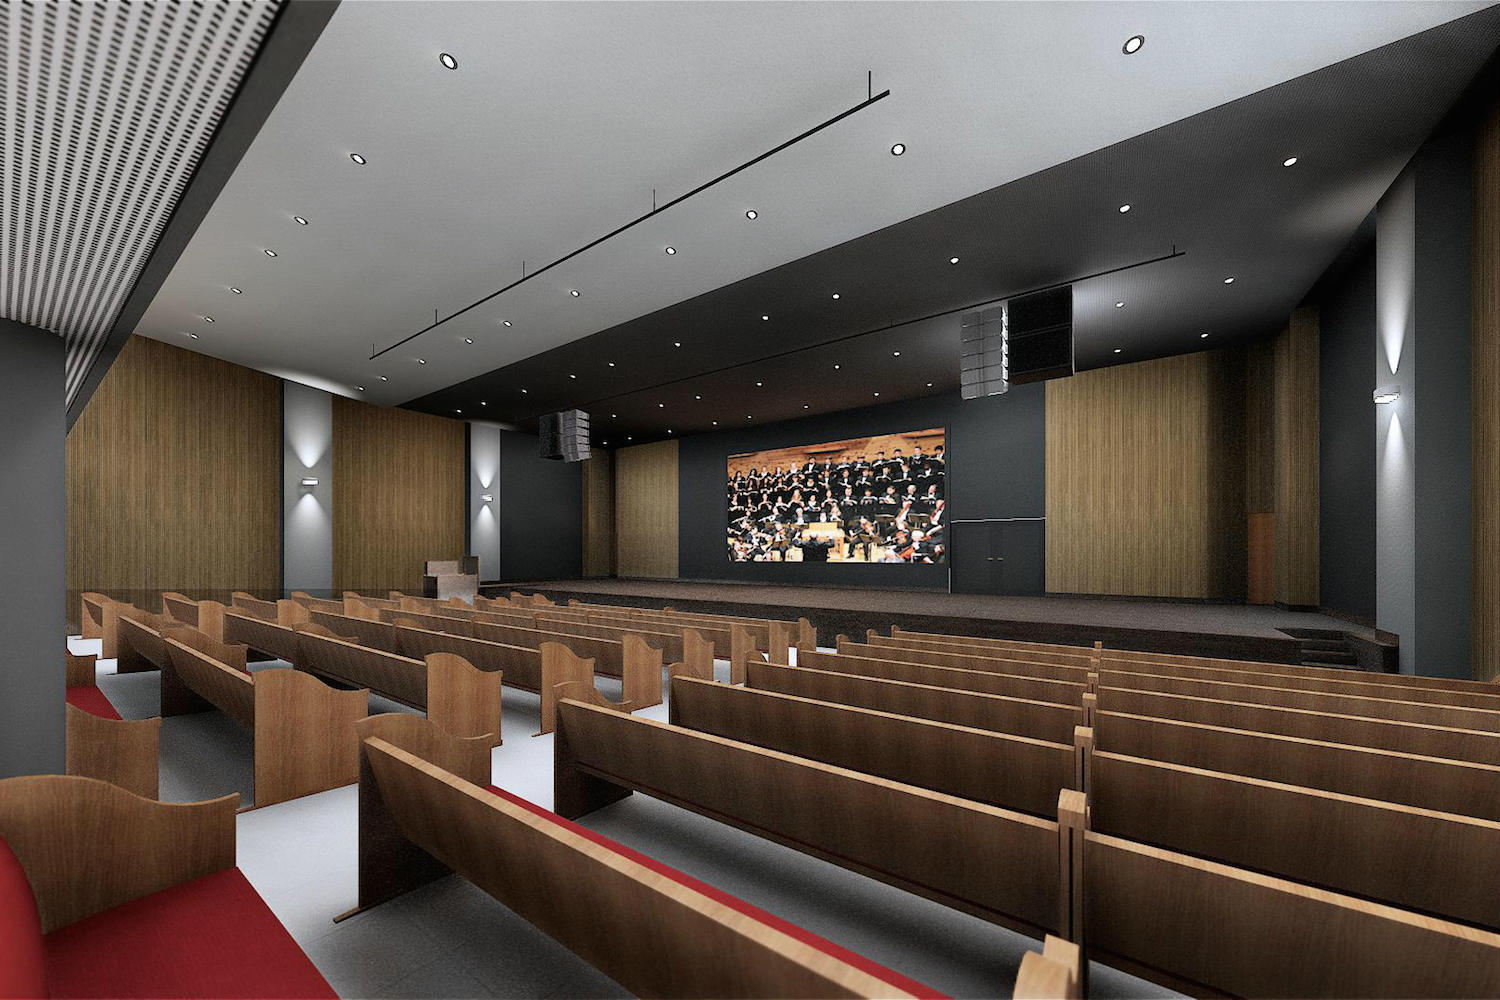 IBP has created a contemporary house of worship in São José. By engaging WSDG at the design stage, the Church planners were assured of providing their parishioners with superb acoustics for their worship services. Render 1